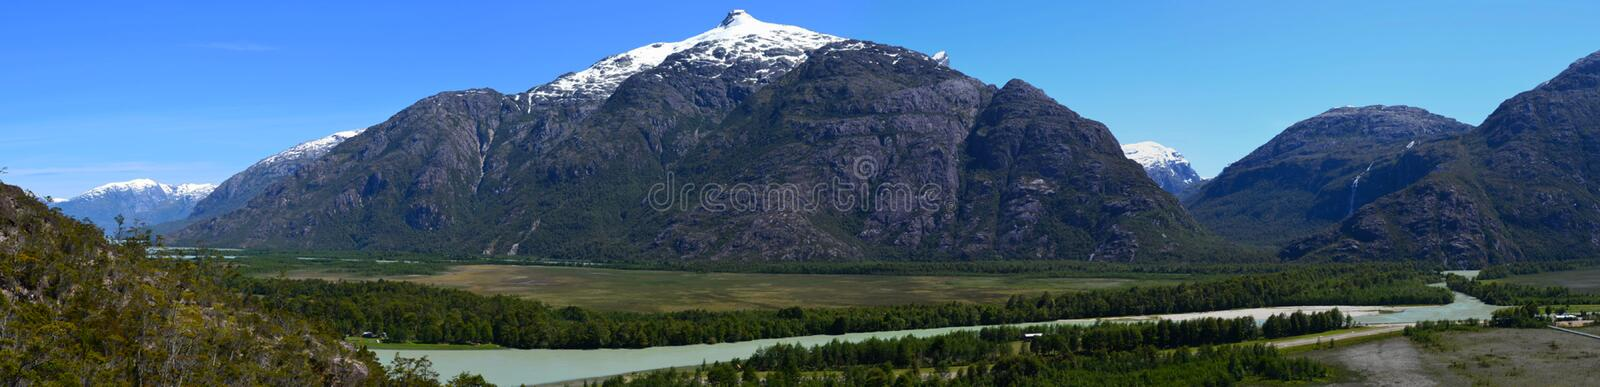 Bäcker River Valley, ein Glazial- Fluss in südlichem Chile's-Patagonia stockbilder